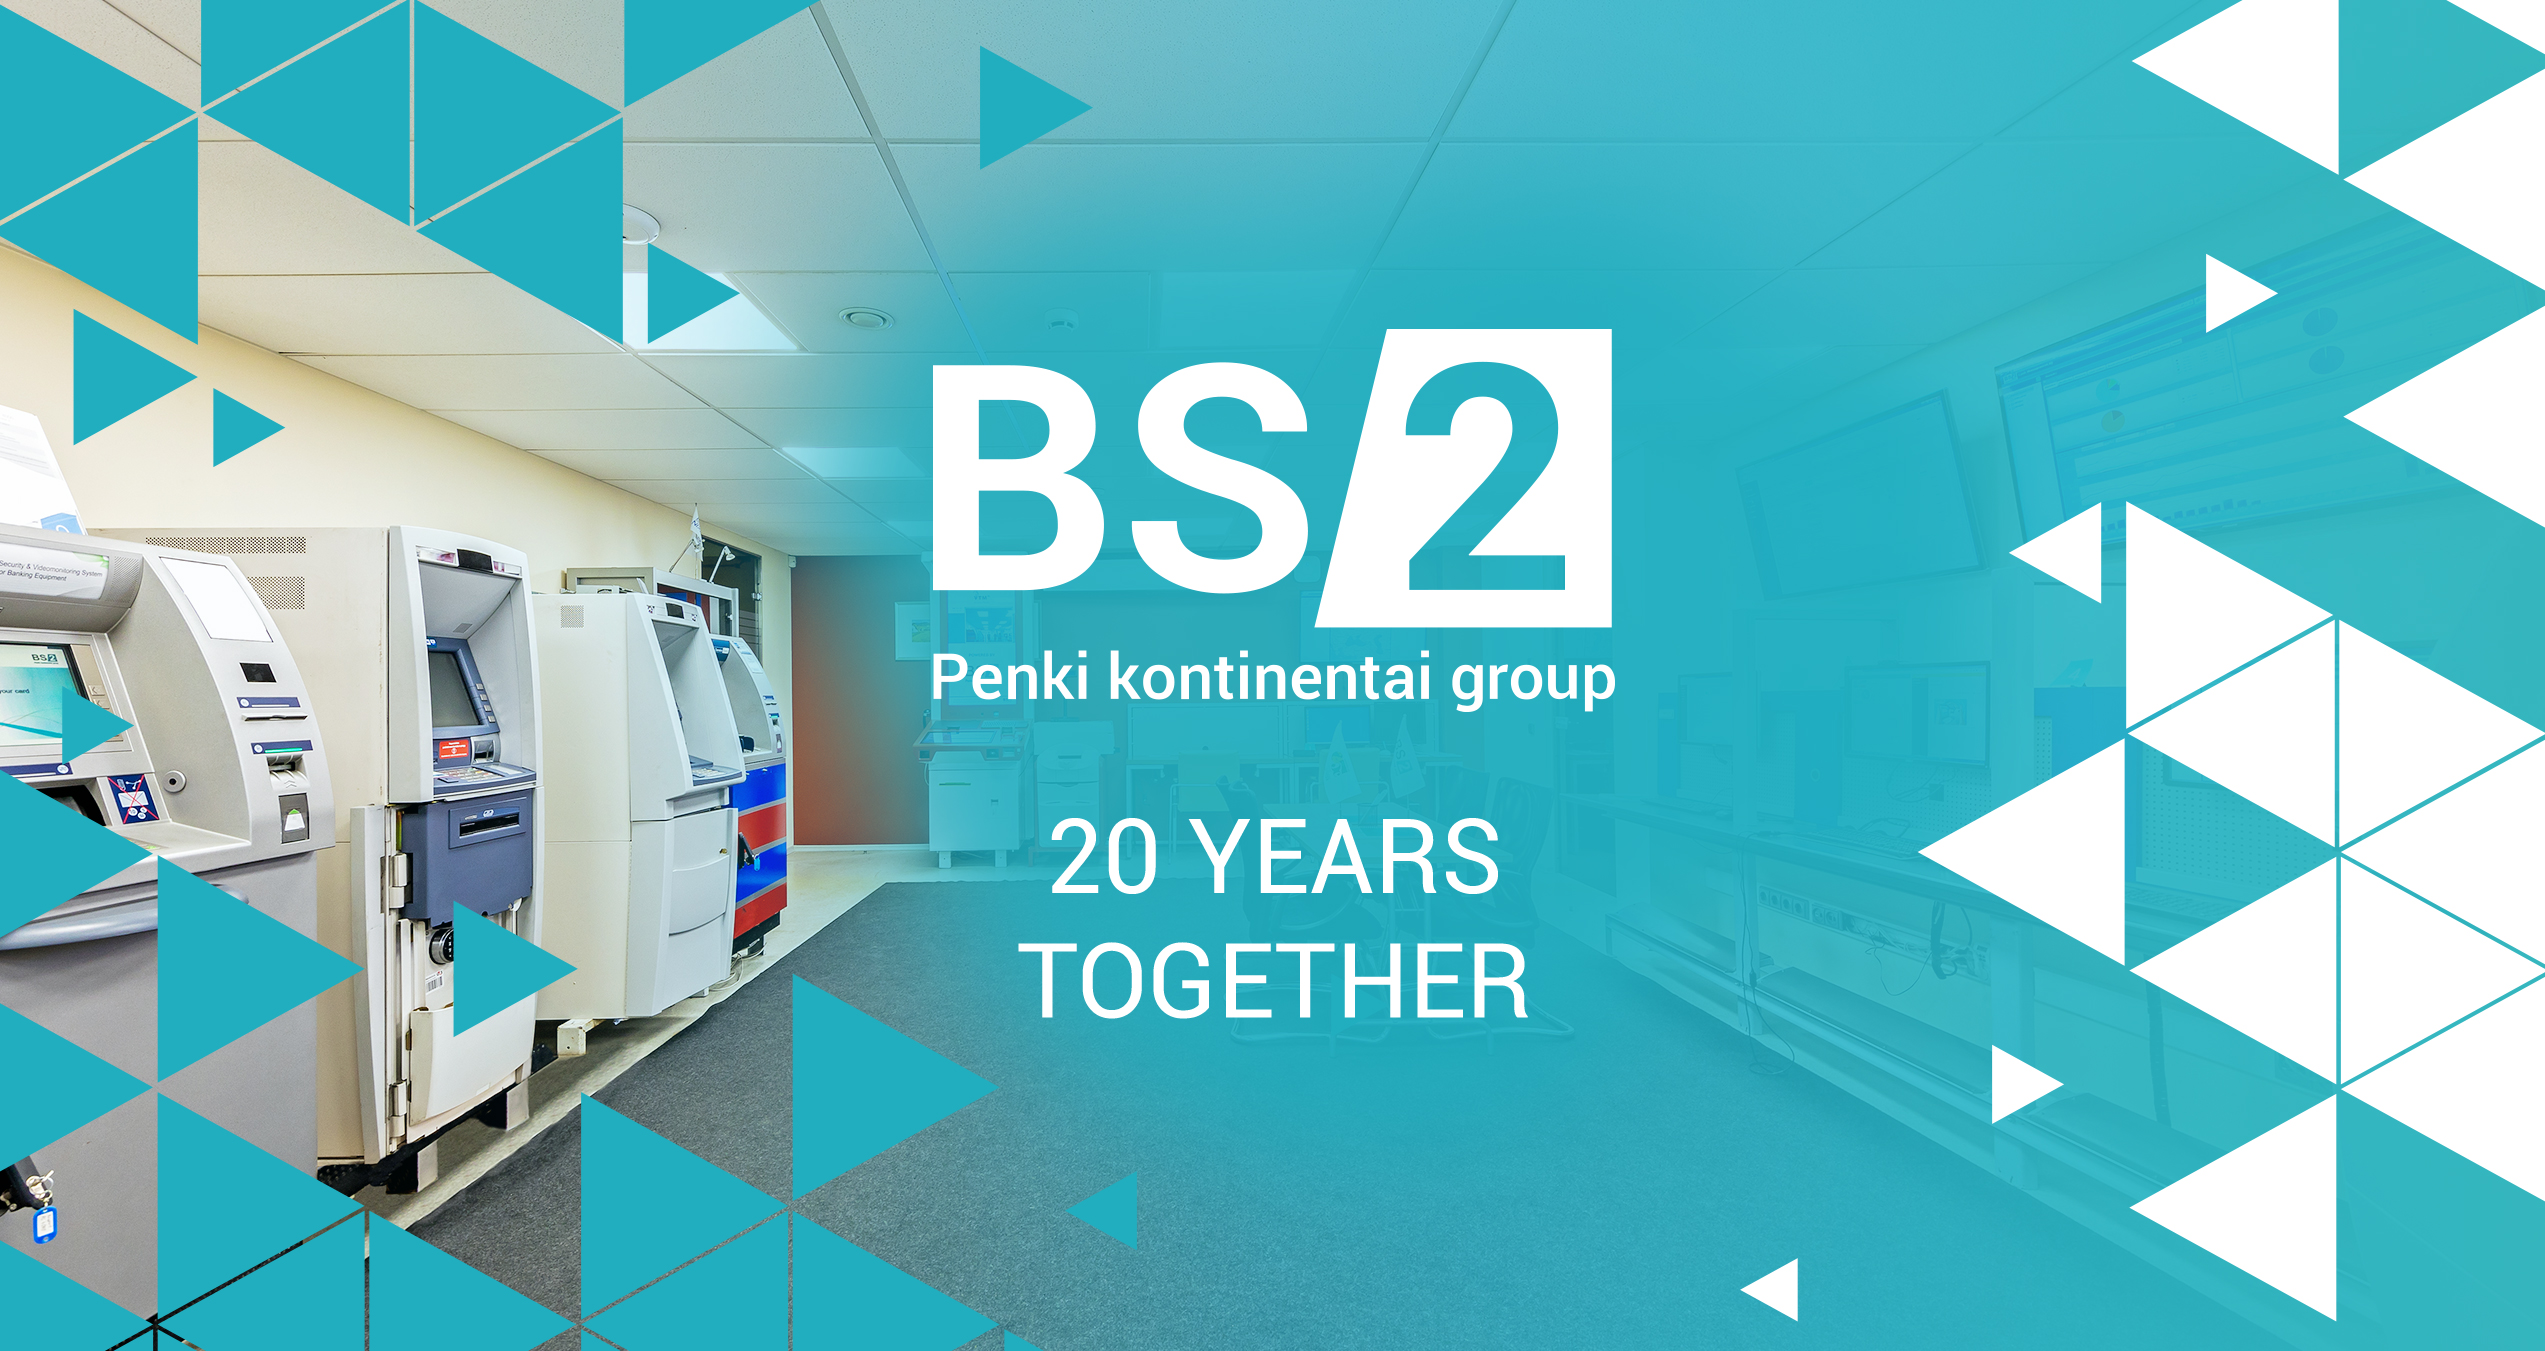 BS/2 Banking Solutions Have Been Glorifying Lithuania for 20 Years